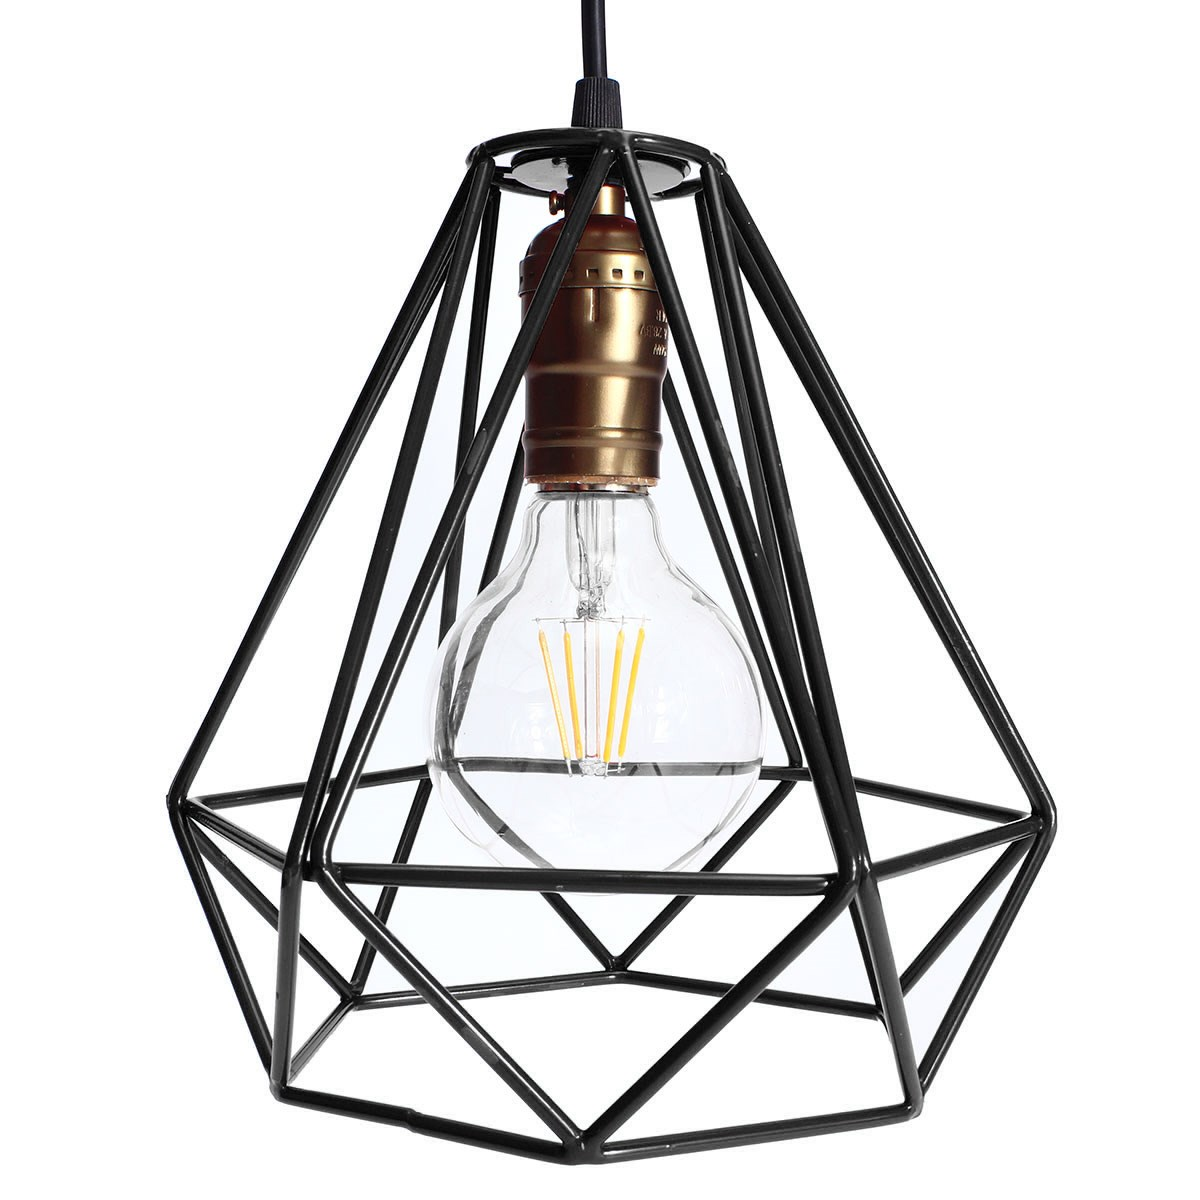 cage lighting. lamp cover loft industrial edison metal wire frame ceiling pendant hanging light lampshade modern cage fixture-in covers \u0026 shades from lights lighting